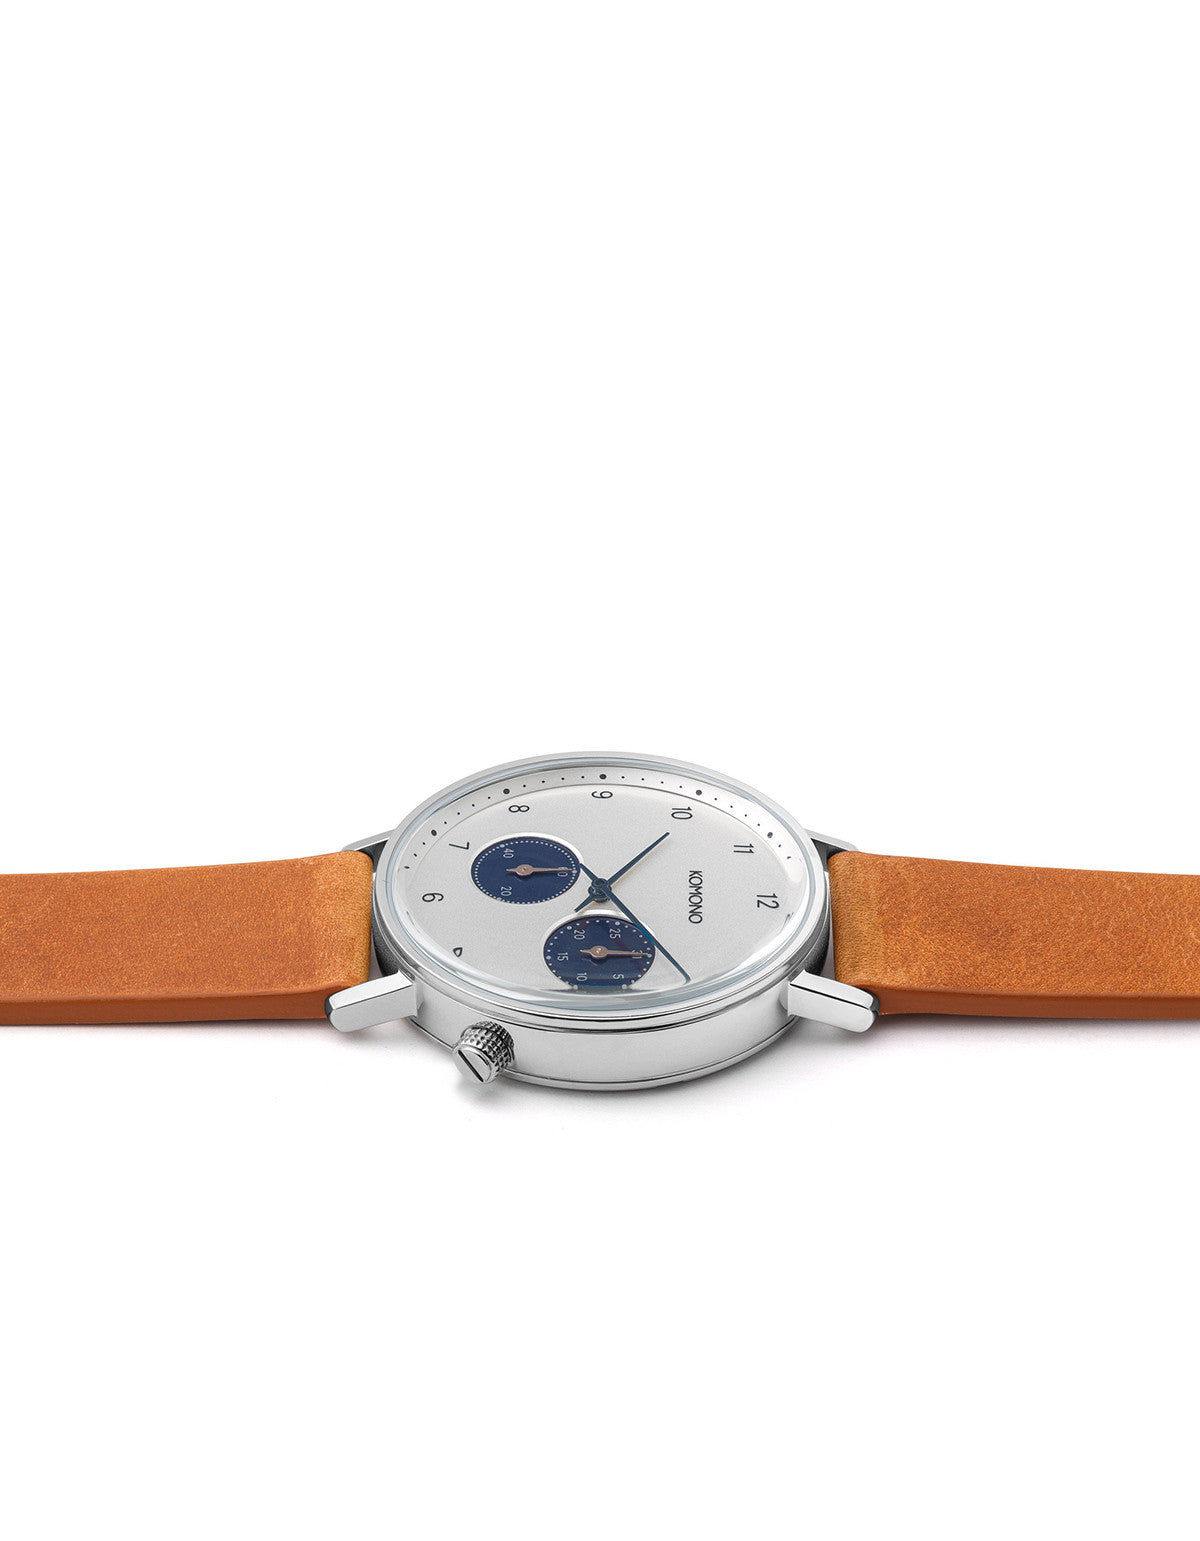 Komono Walther Crafted Watch Camel - Still Life - 4